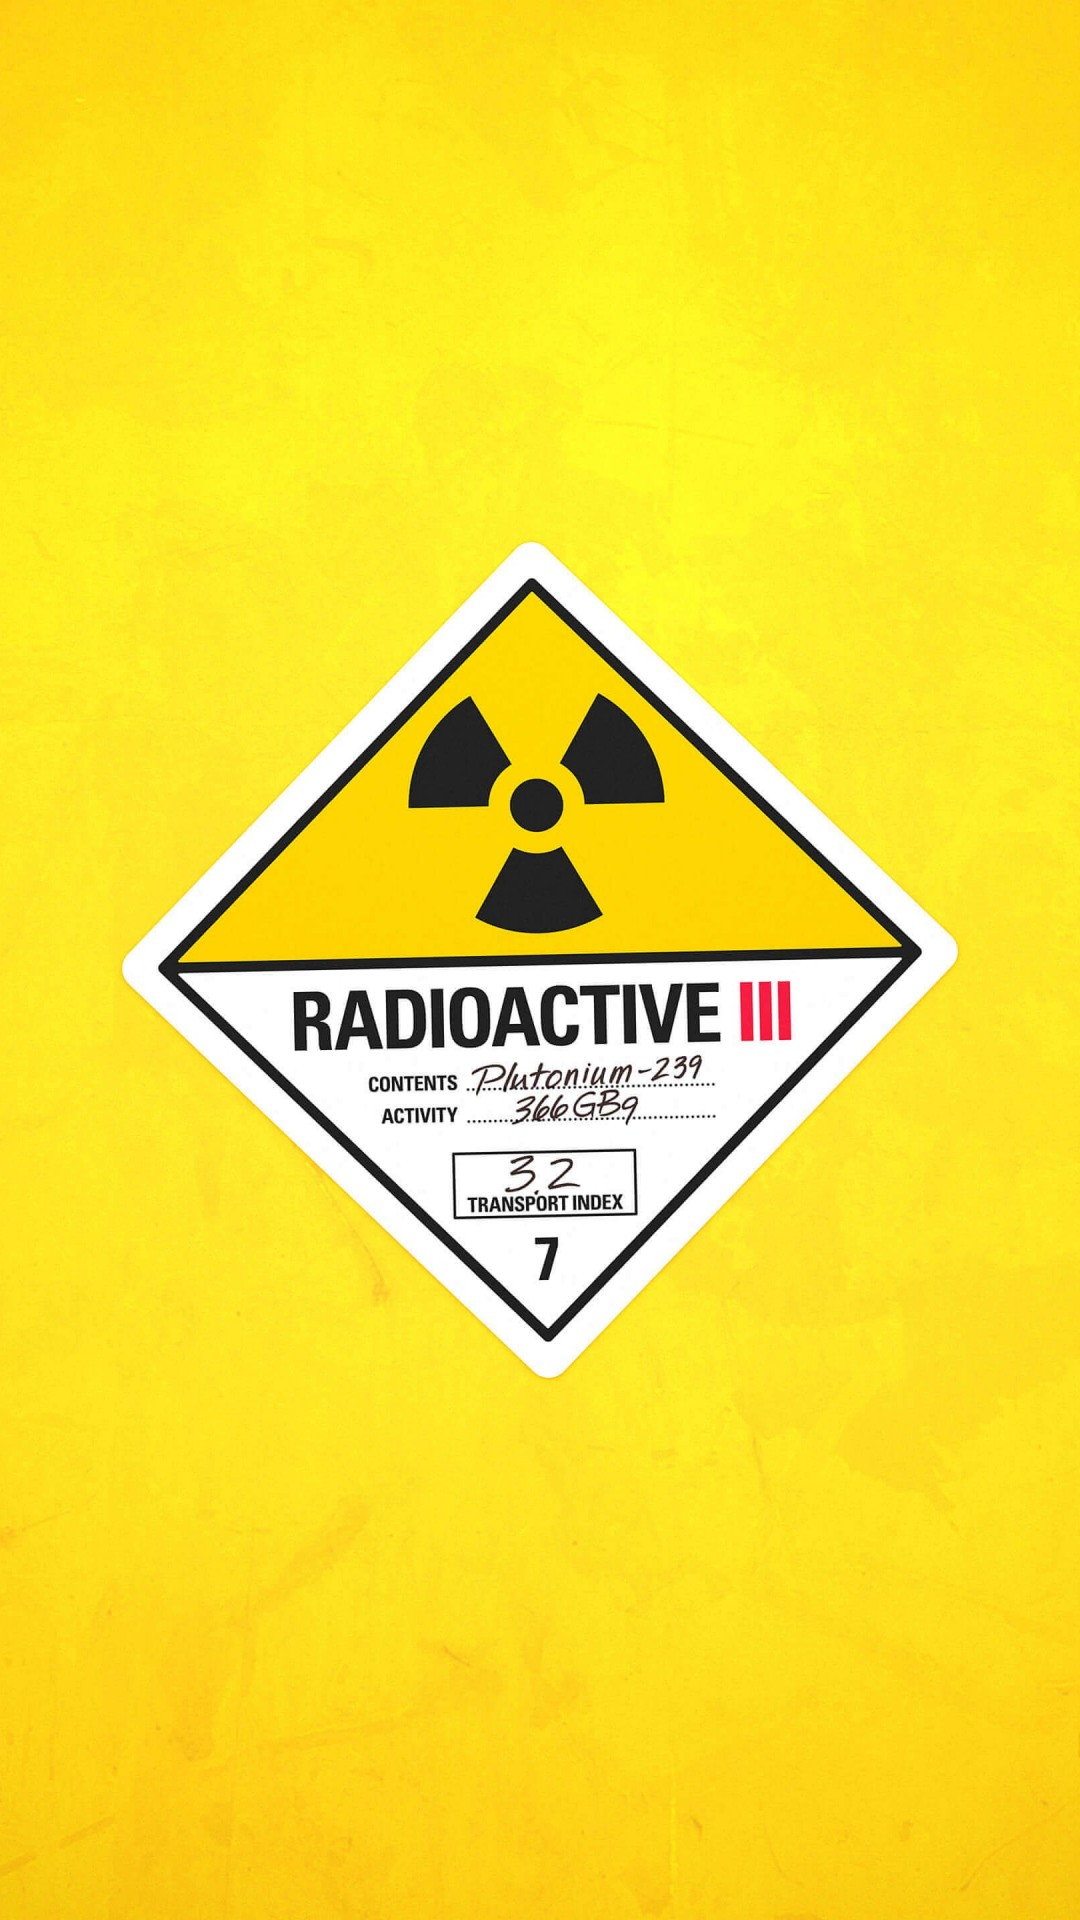 Radioactive Wallpaper for LG G2